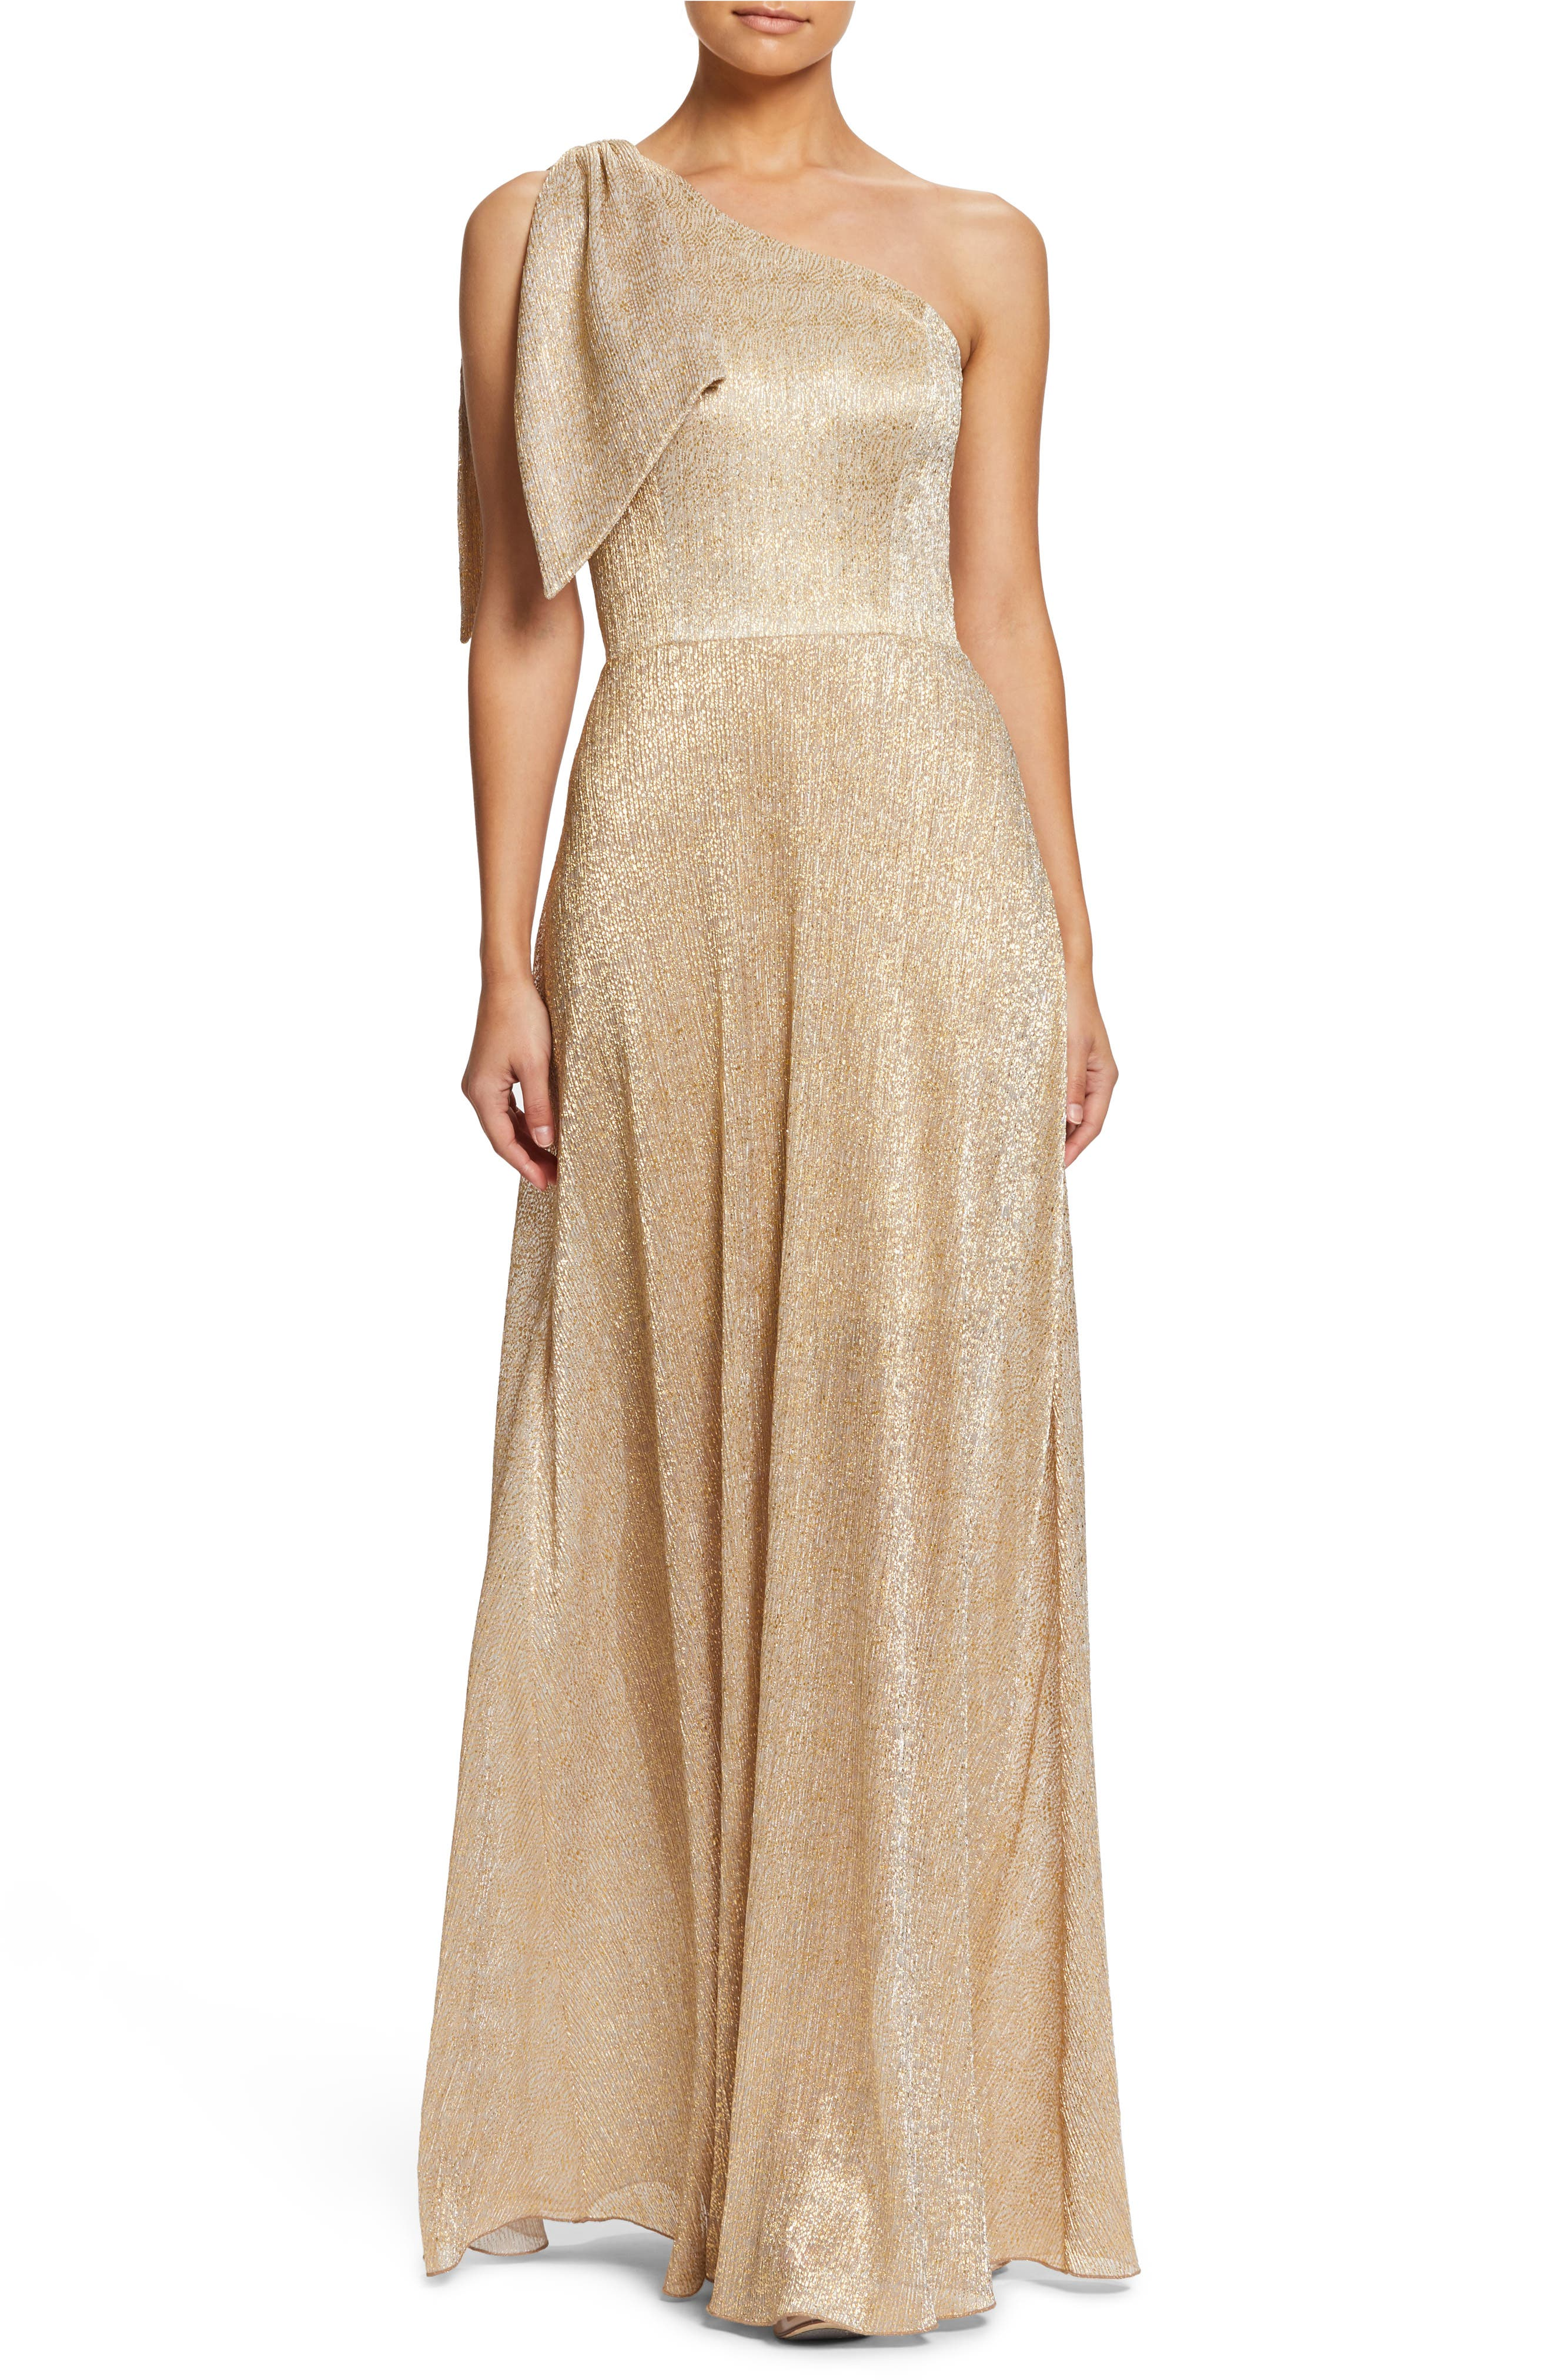 1930s Style Wedding Dresses | Art Deco Wedding Dress Womens Dress The Population Savannah One-Shoulder Gown Size XX-Large - Metallic $298.00 AT vintagedancer.com